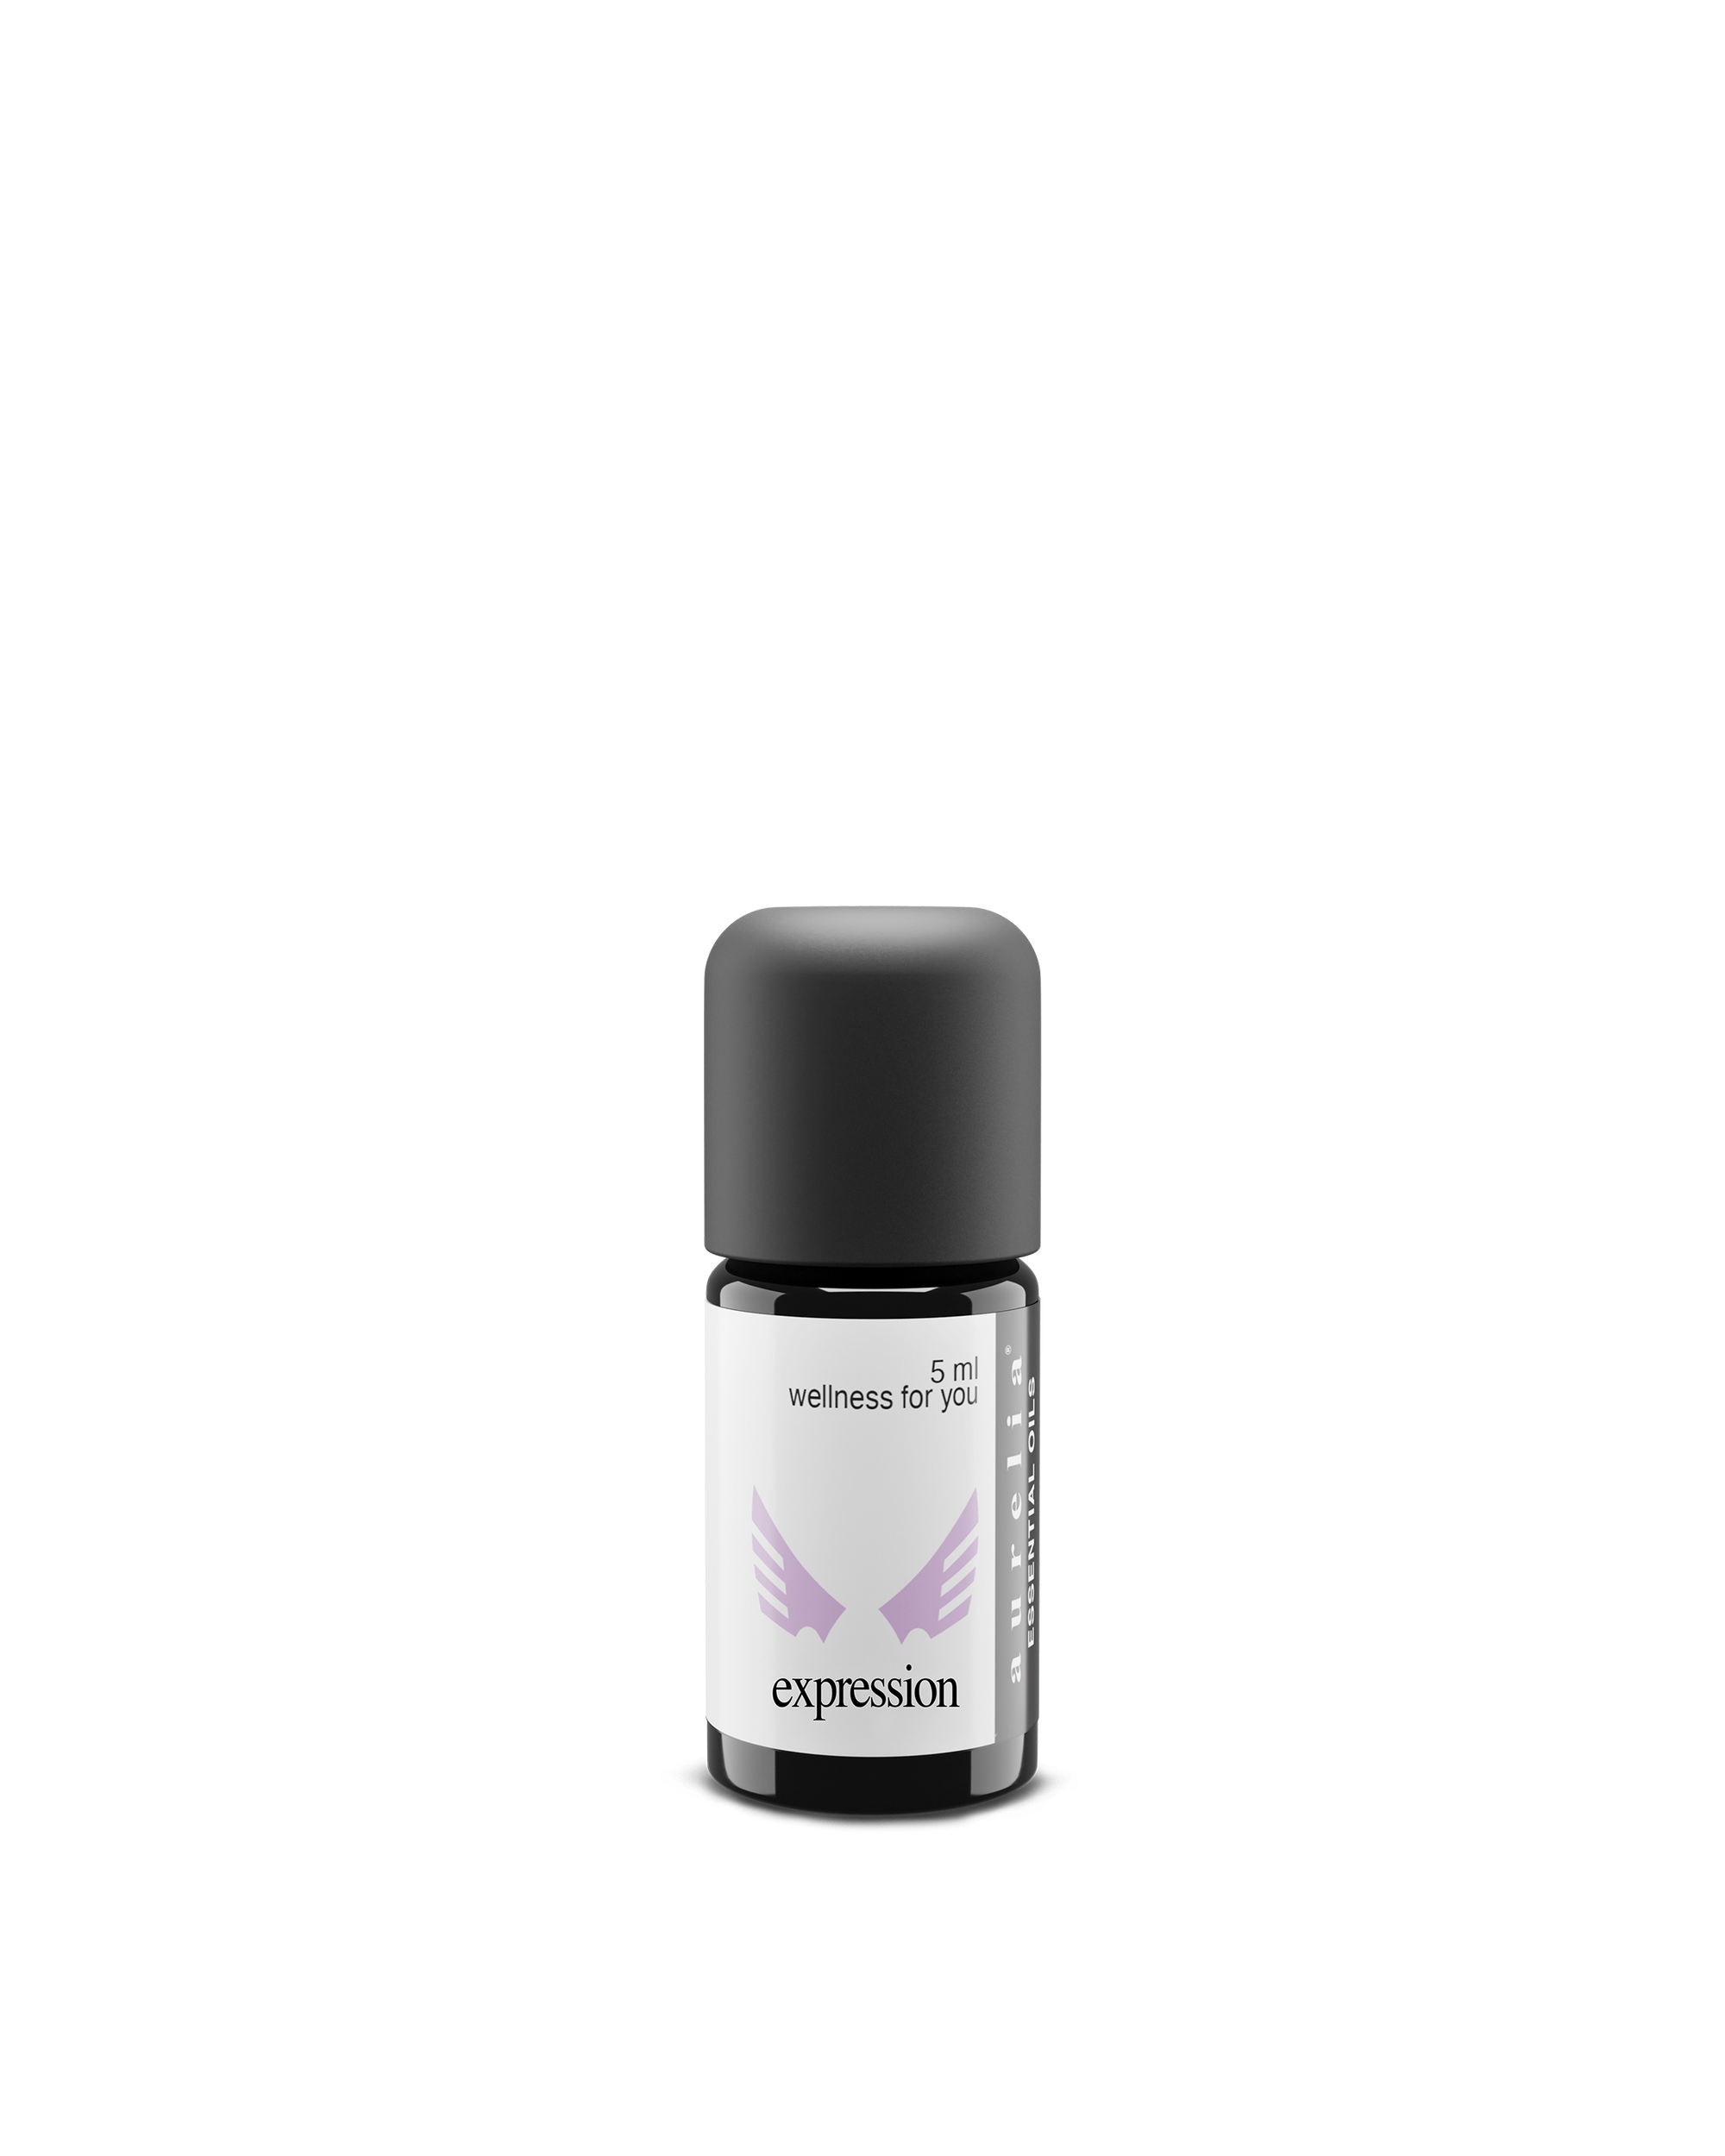 Expression Essential Oil Blend